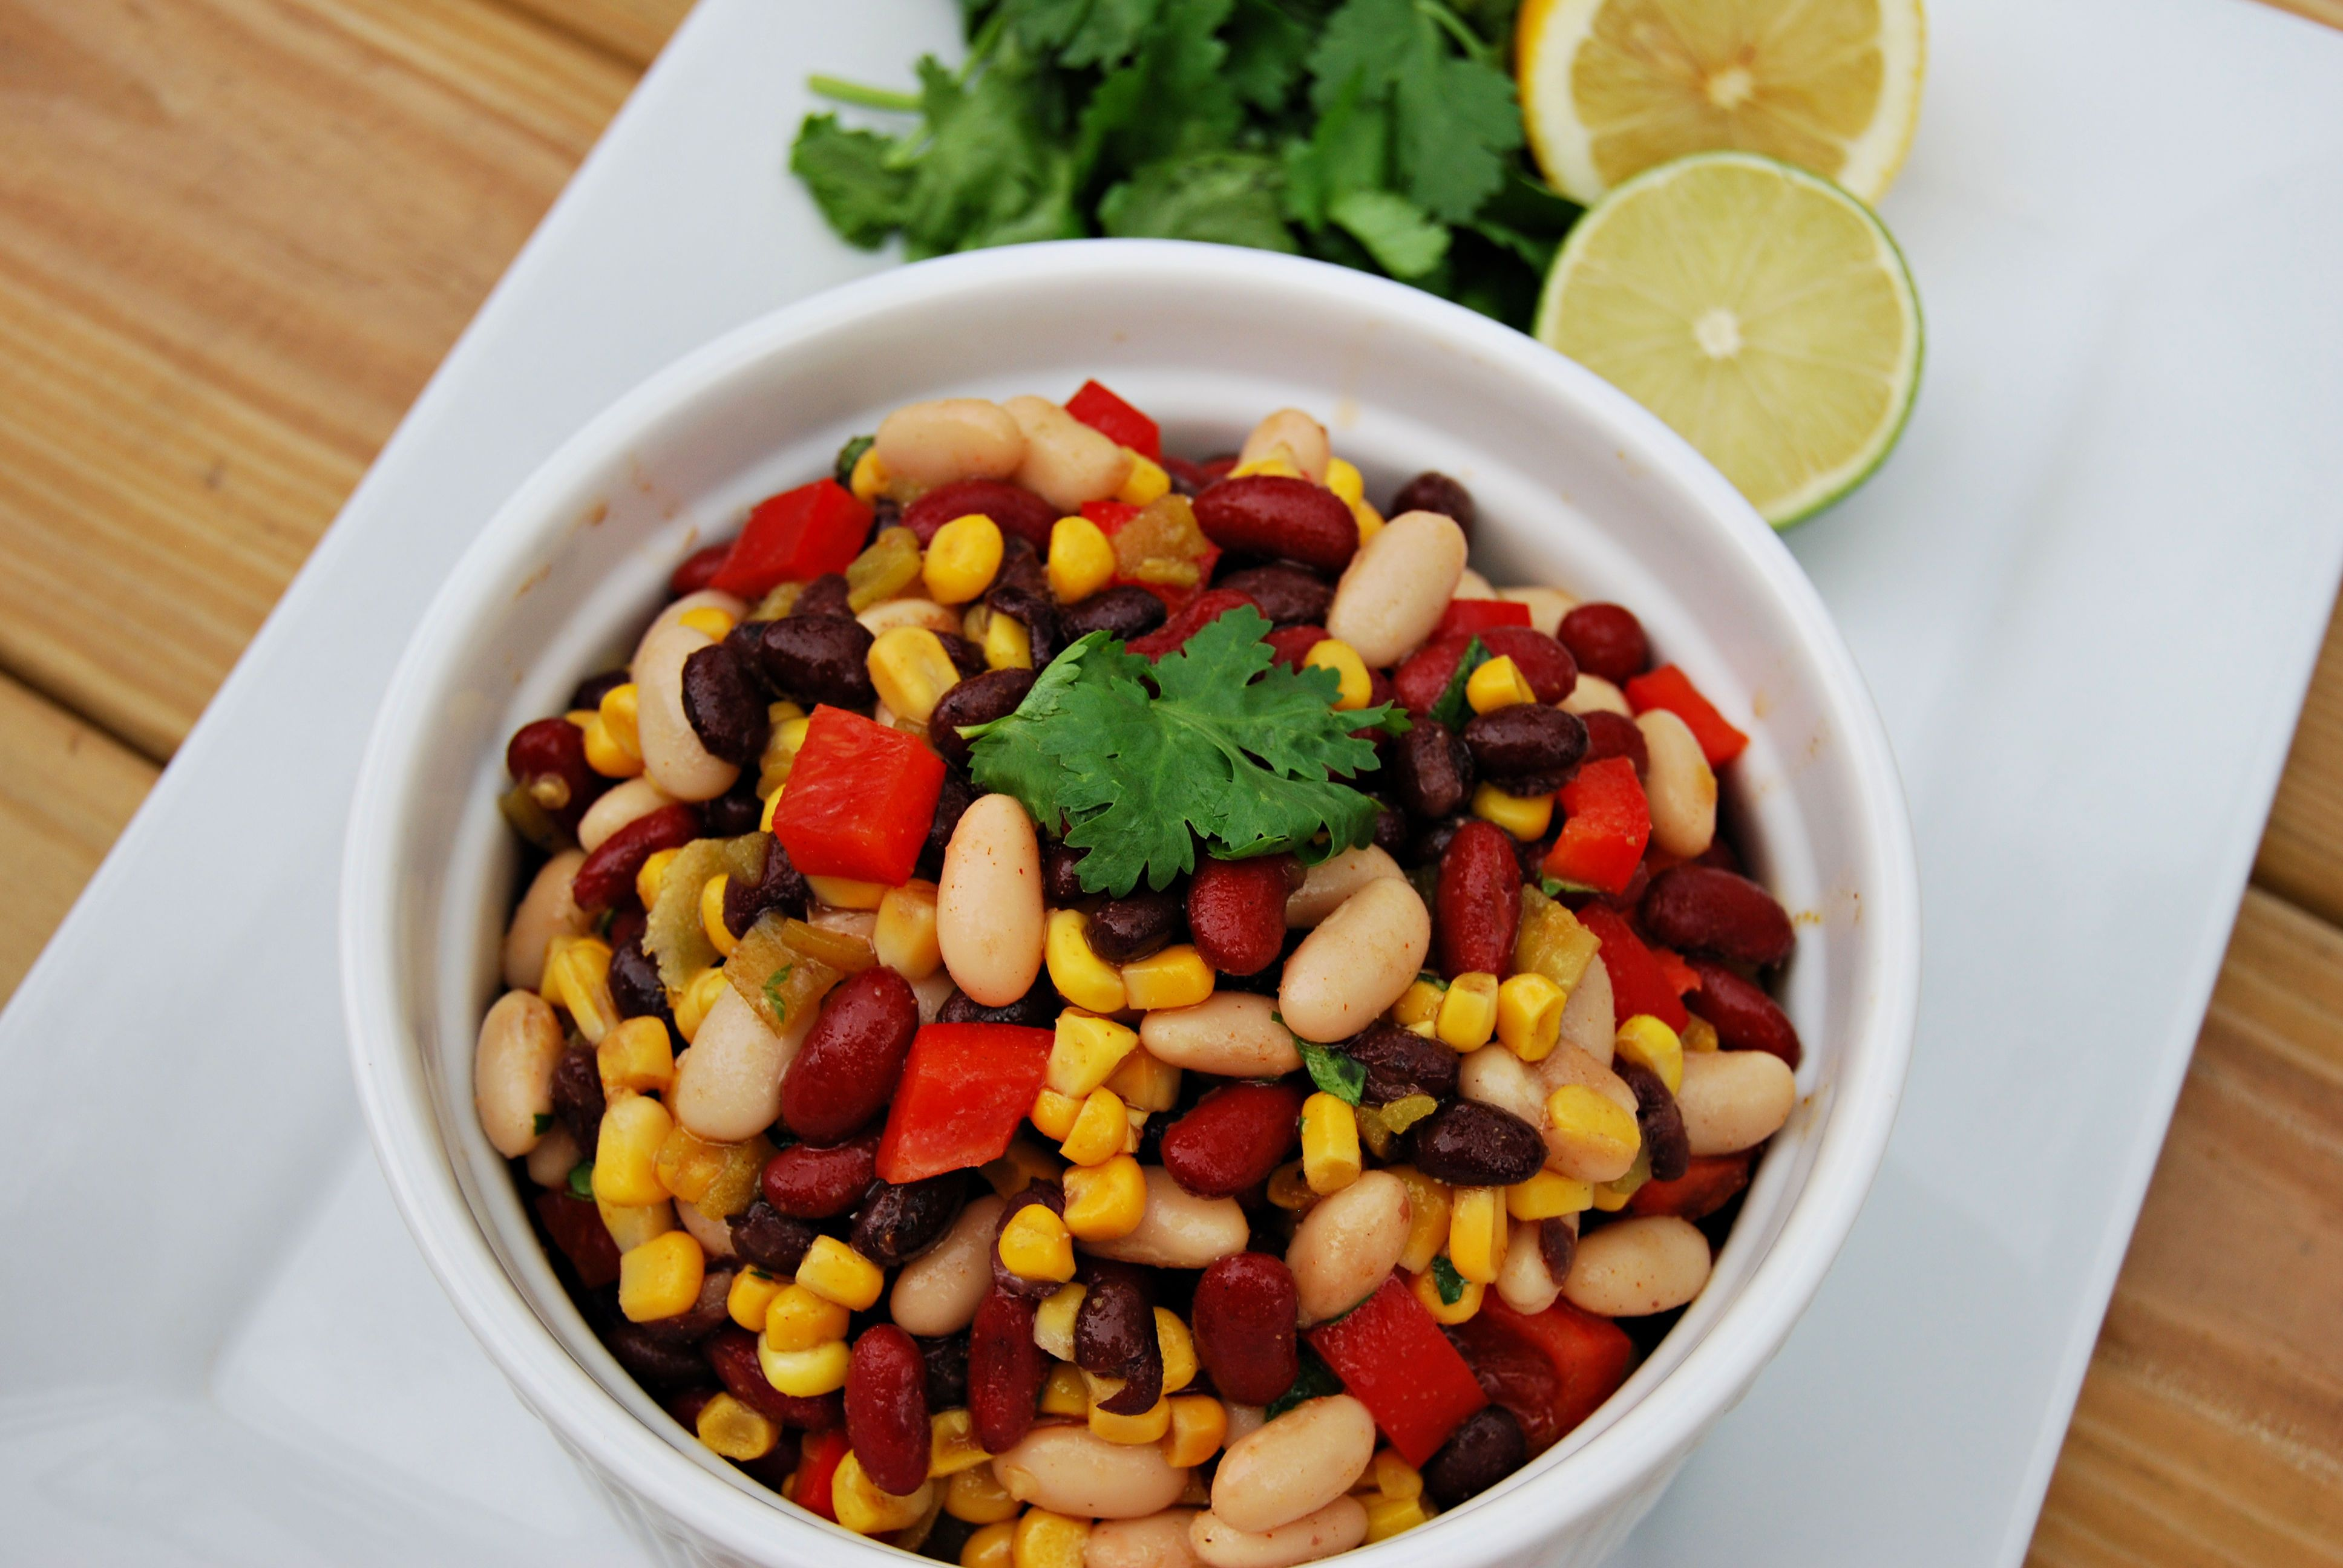 3 Bean Salad Is The Tex Mex Side We Can T Stop Making And Eating In 2020 Main Dish Salad Recipes Bean Salad Recipes Bean Salad